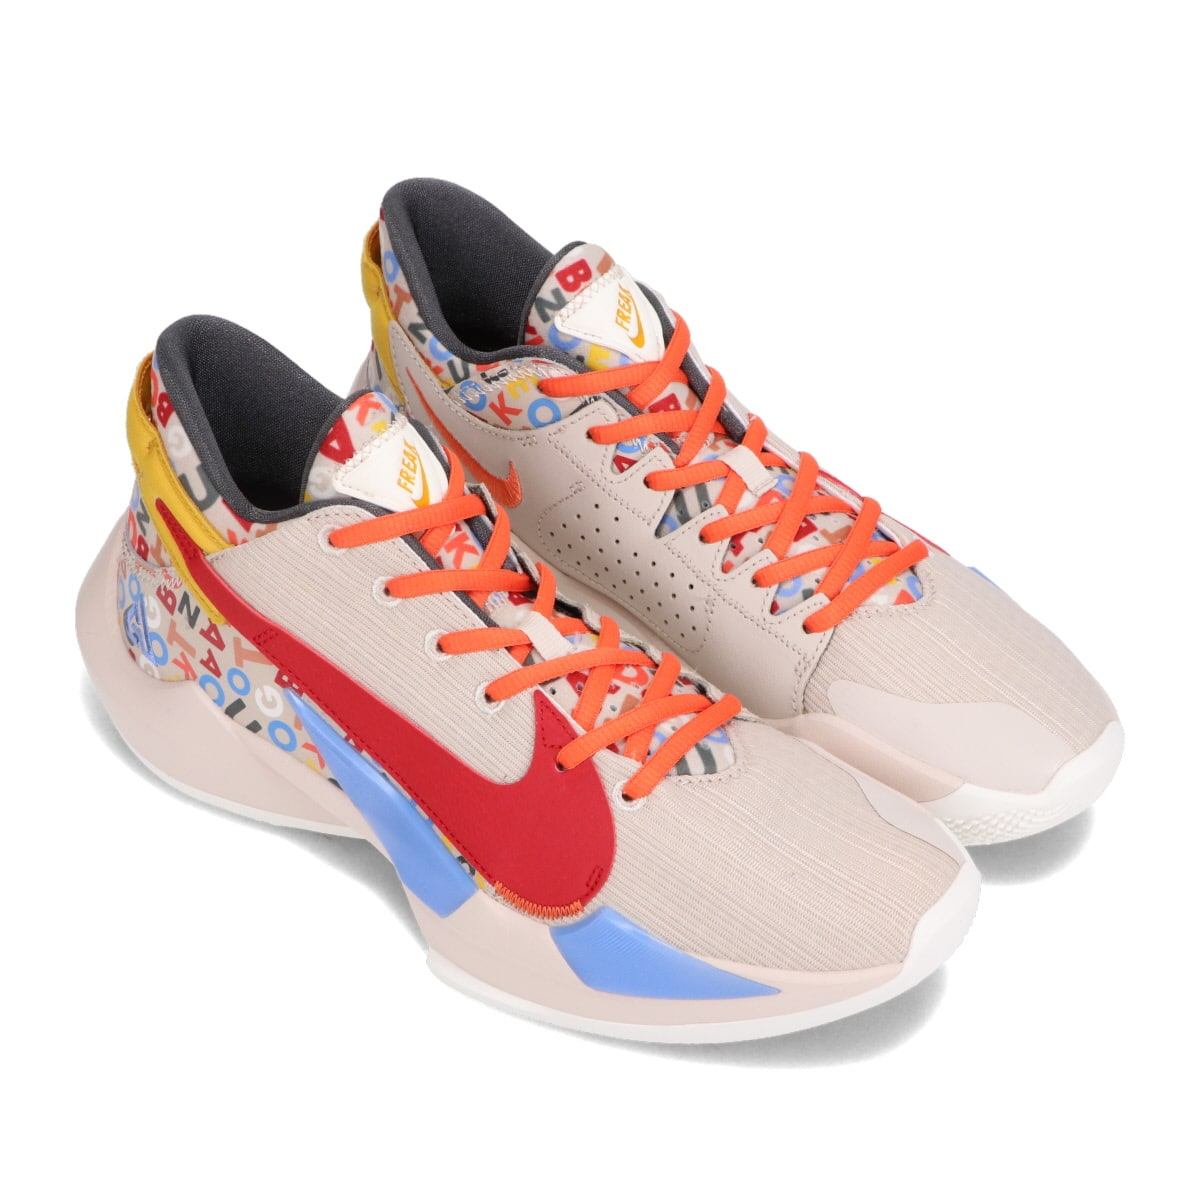 NIKE ZOOM FREAK 2 DESERT SAND/GYM RED-SAIL-CAMELLIA 21SP-I_photo_large